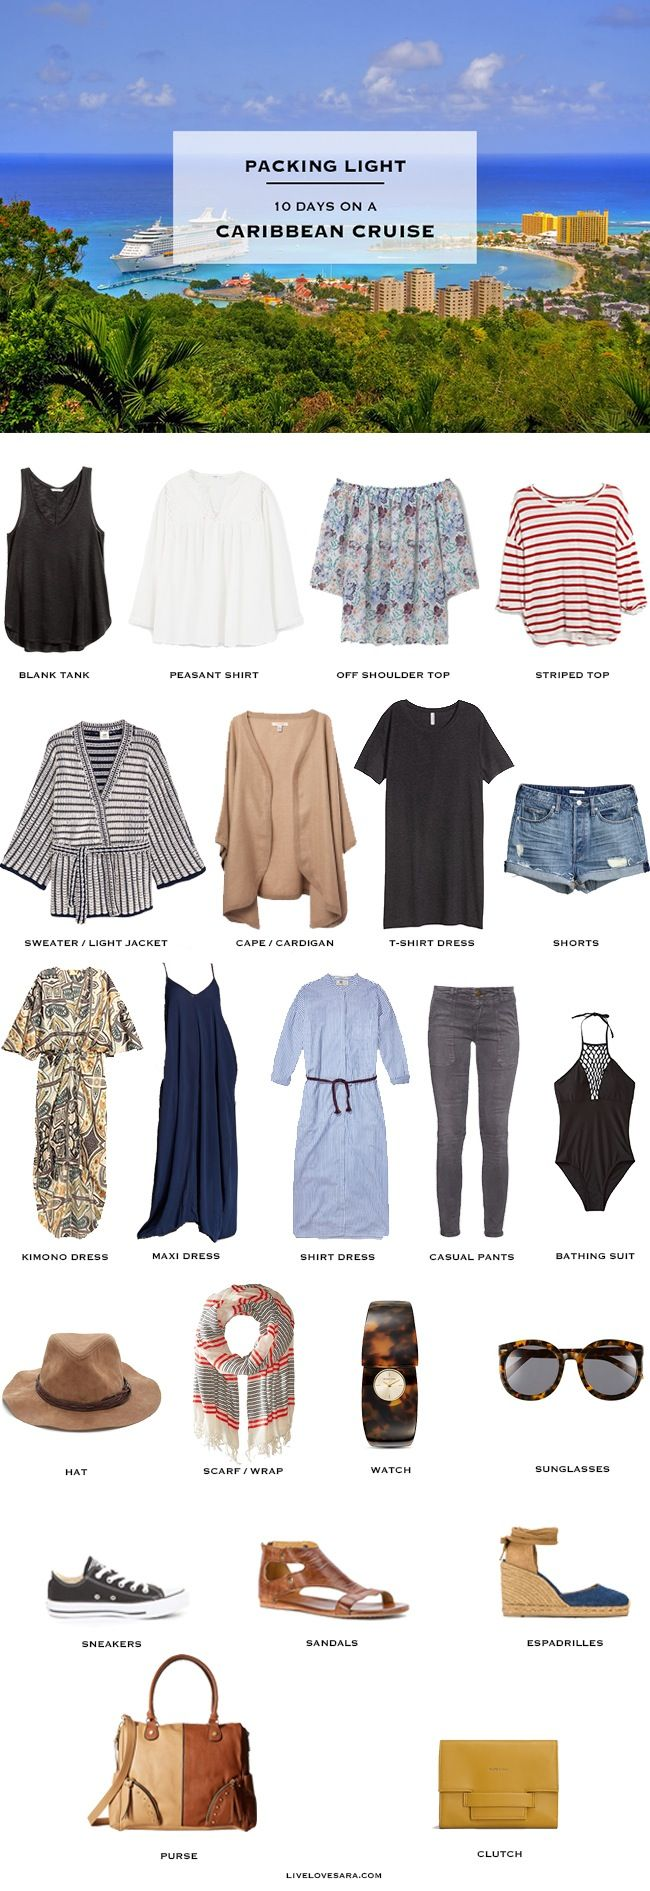 What to pack for a Caribbean Cruise - Packing Light